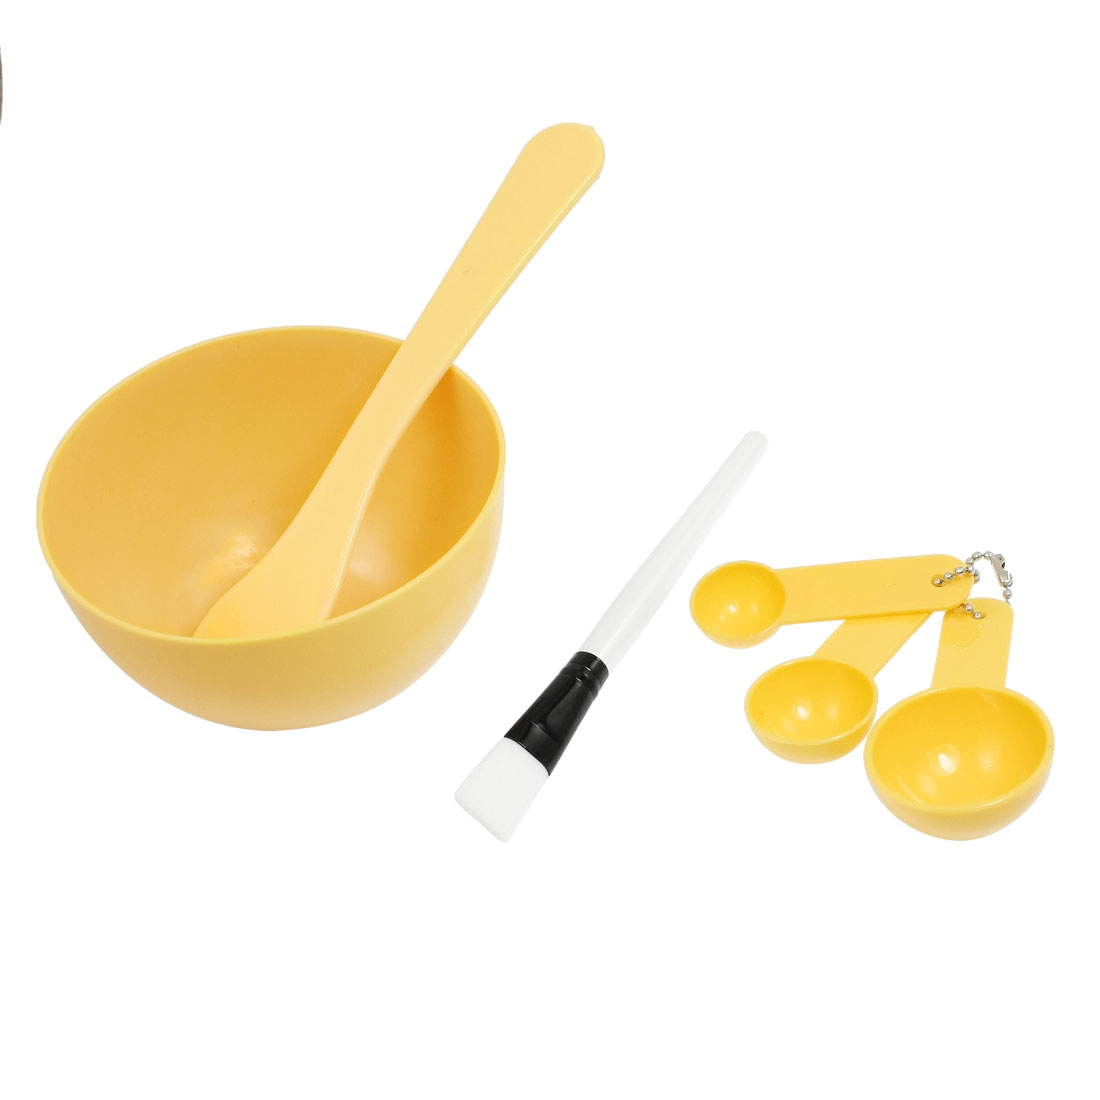 Set 4 in 1 DIY Facial Mask Mixing Bowl Stick Brush Spoon Tool Apricot for Women